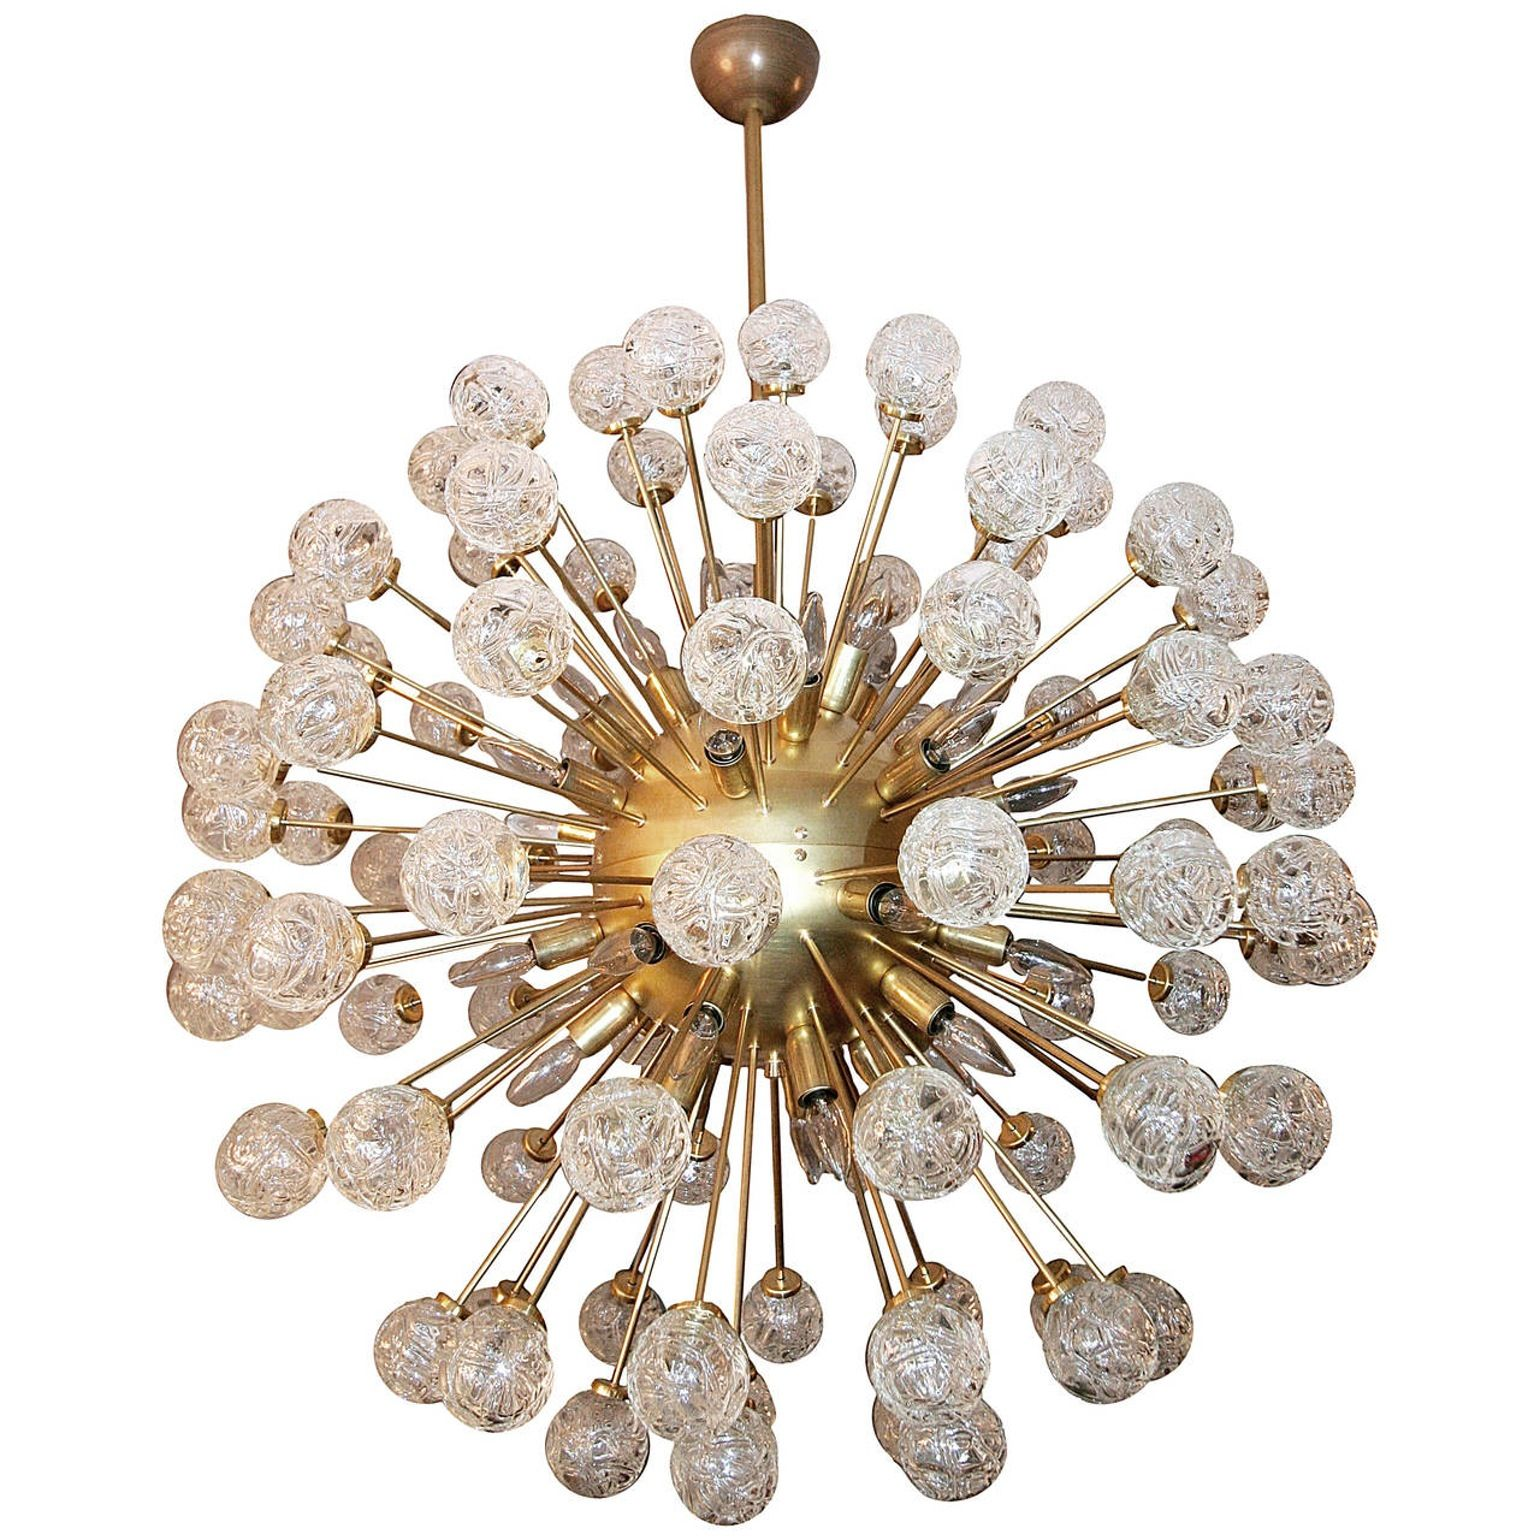 dering hall, chandeliers, room decor